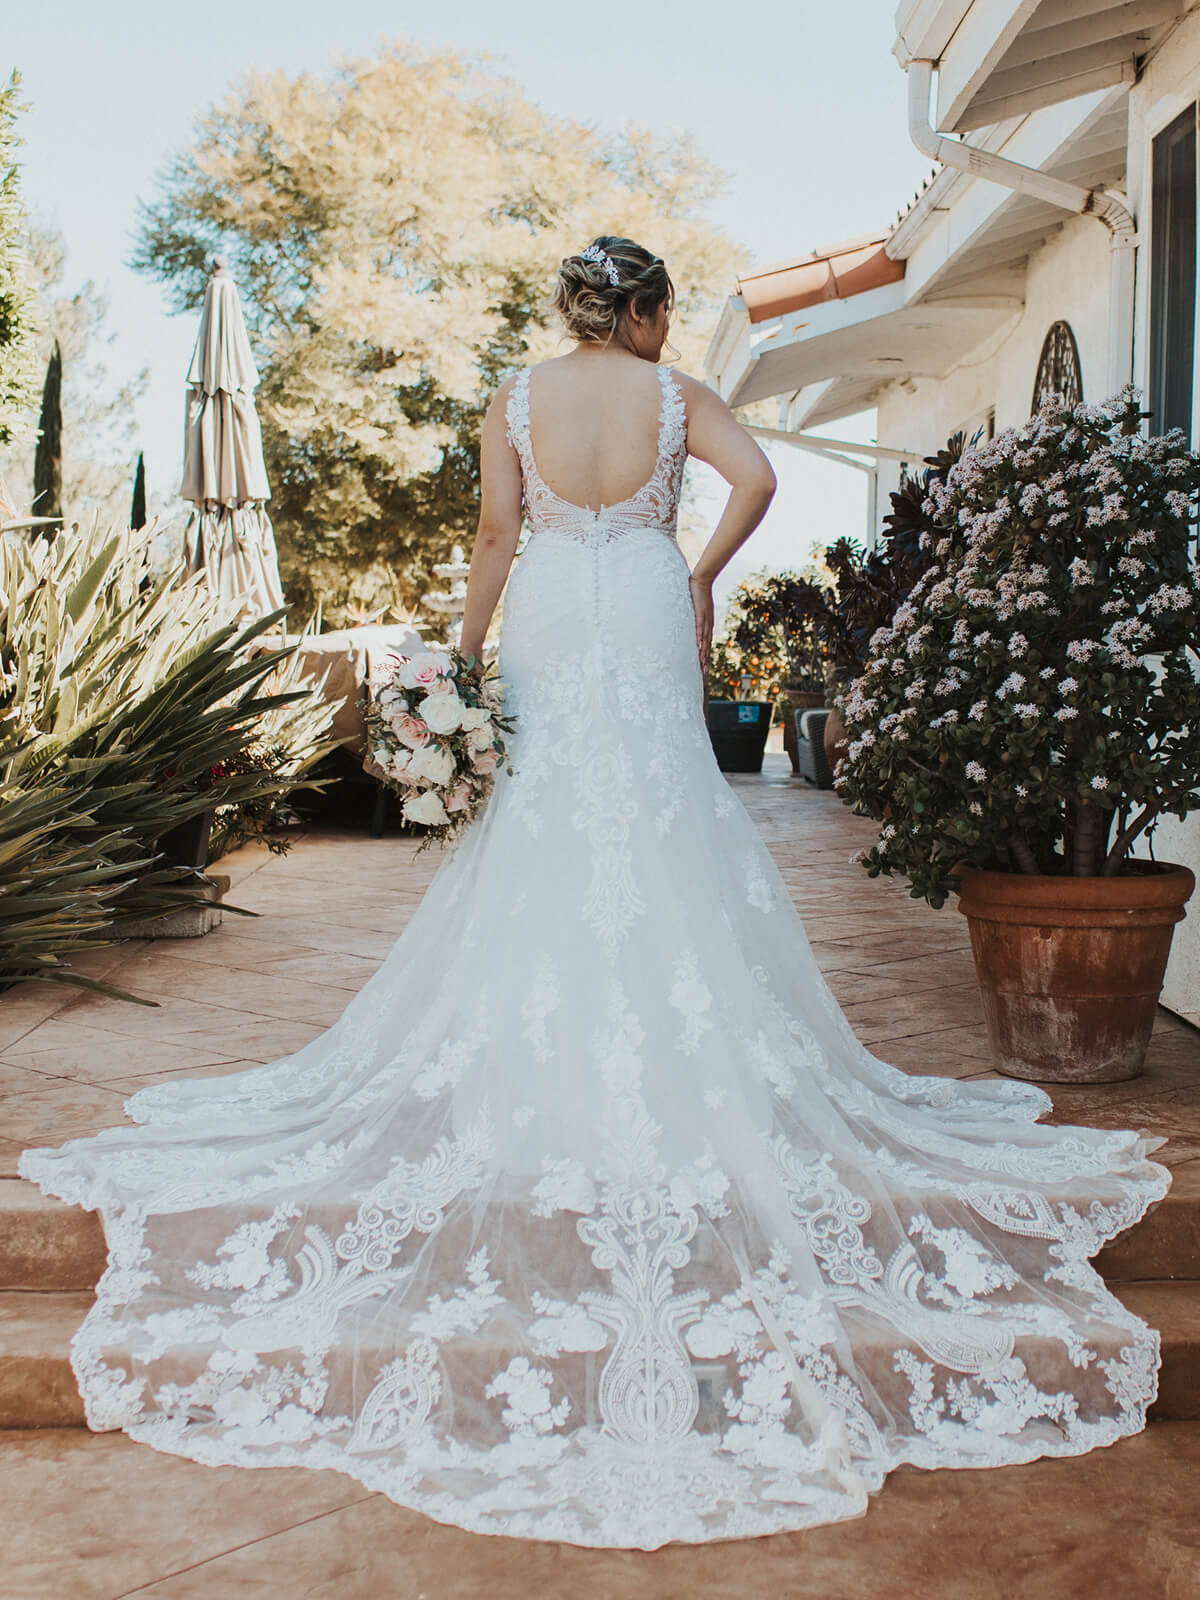 Style Willa's gorgeous lace train + Karina + this gorgeous venue = a recipe for beauty.